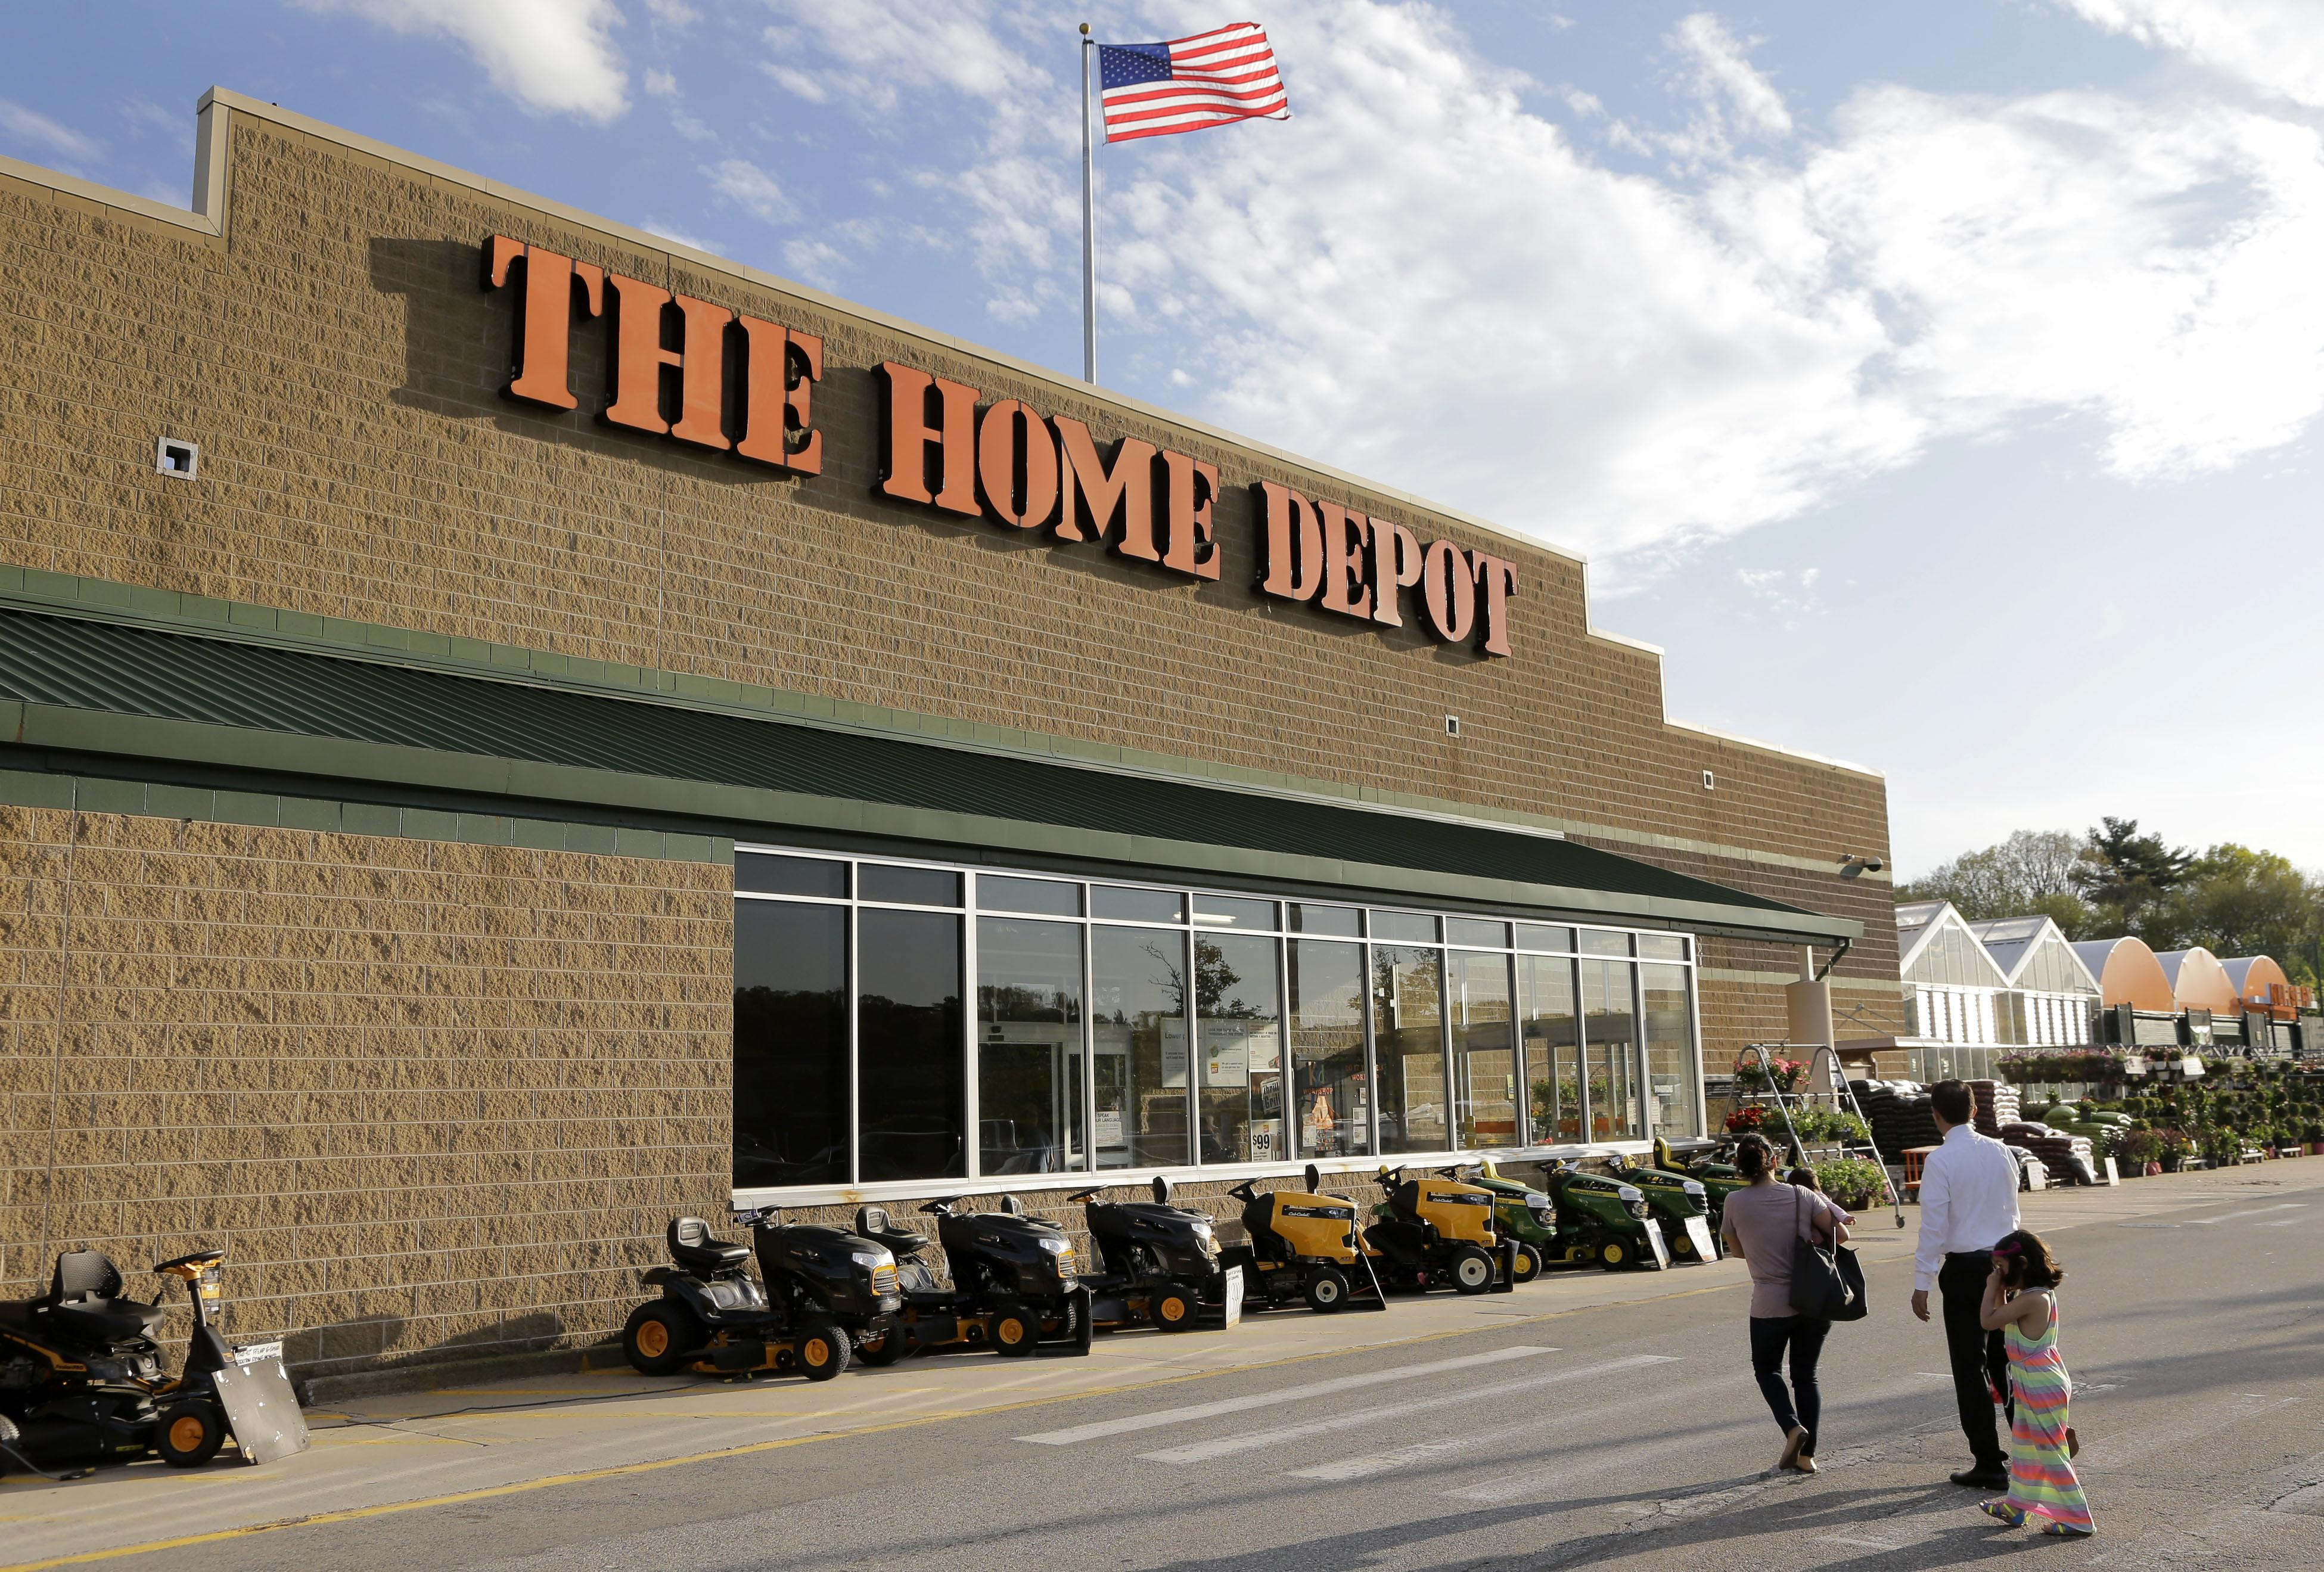 Lawsuit Home Depot discriminated against mom with newborn